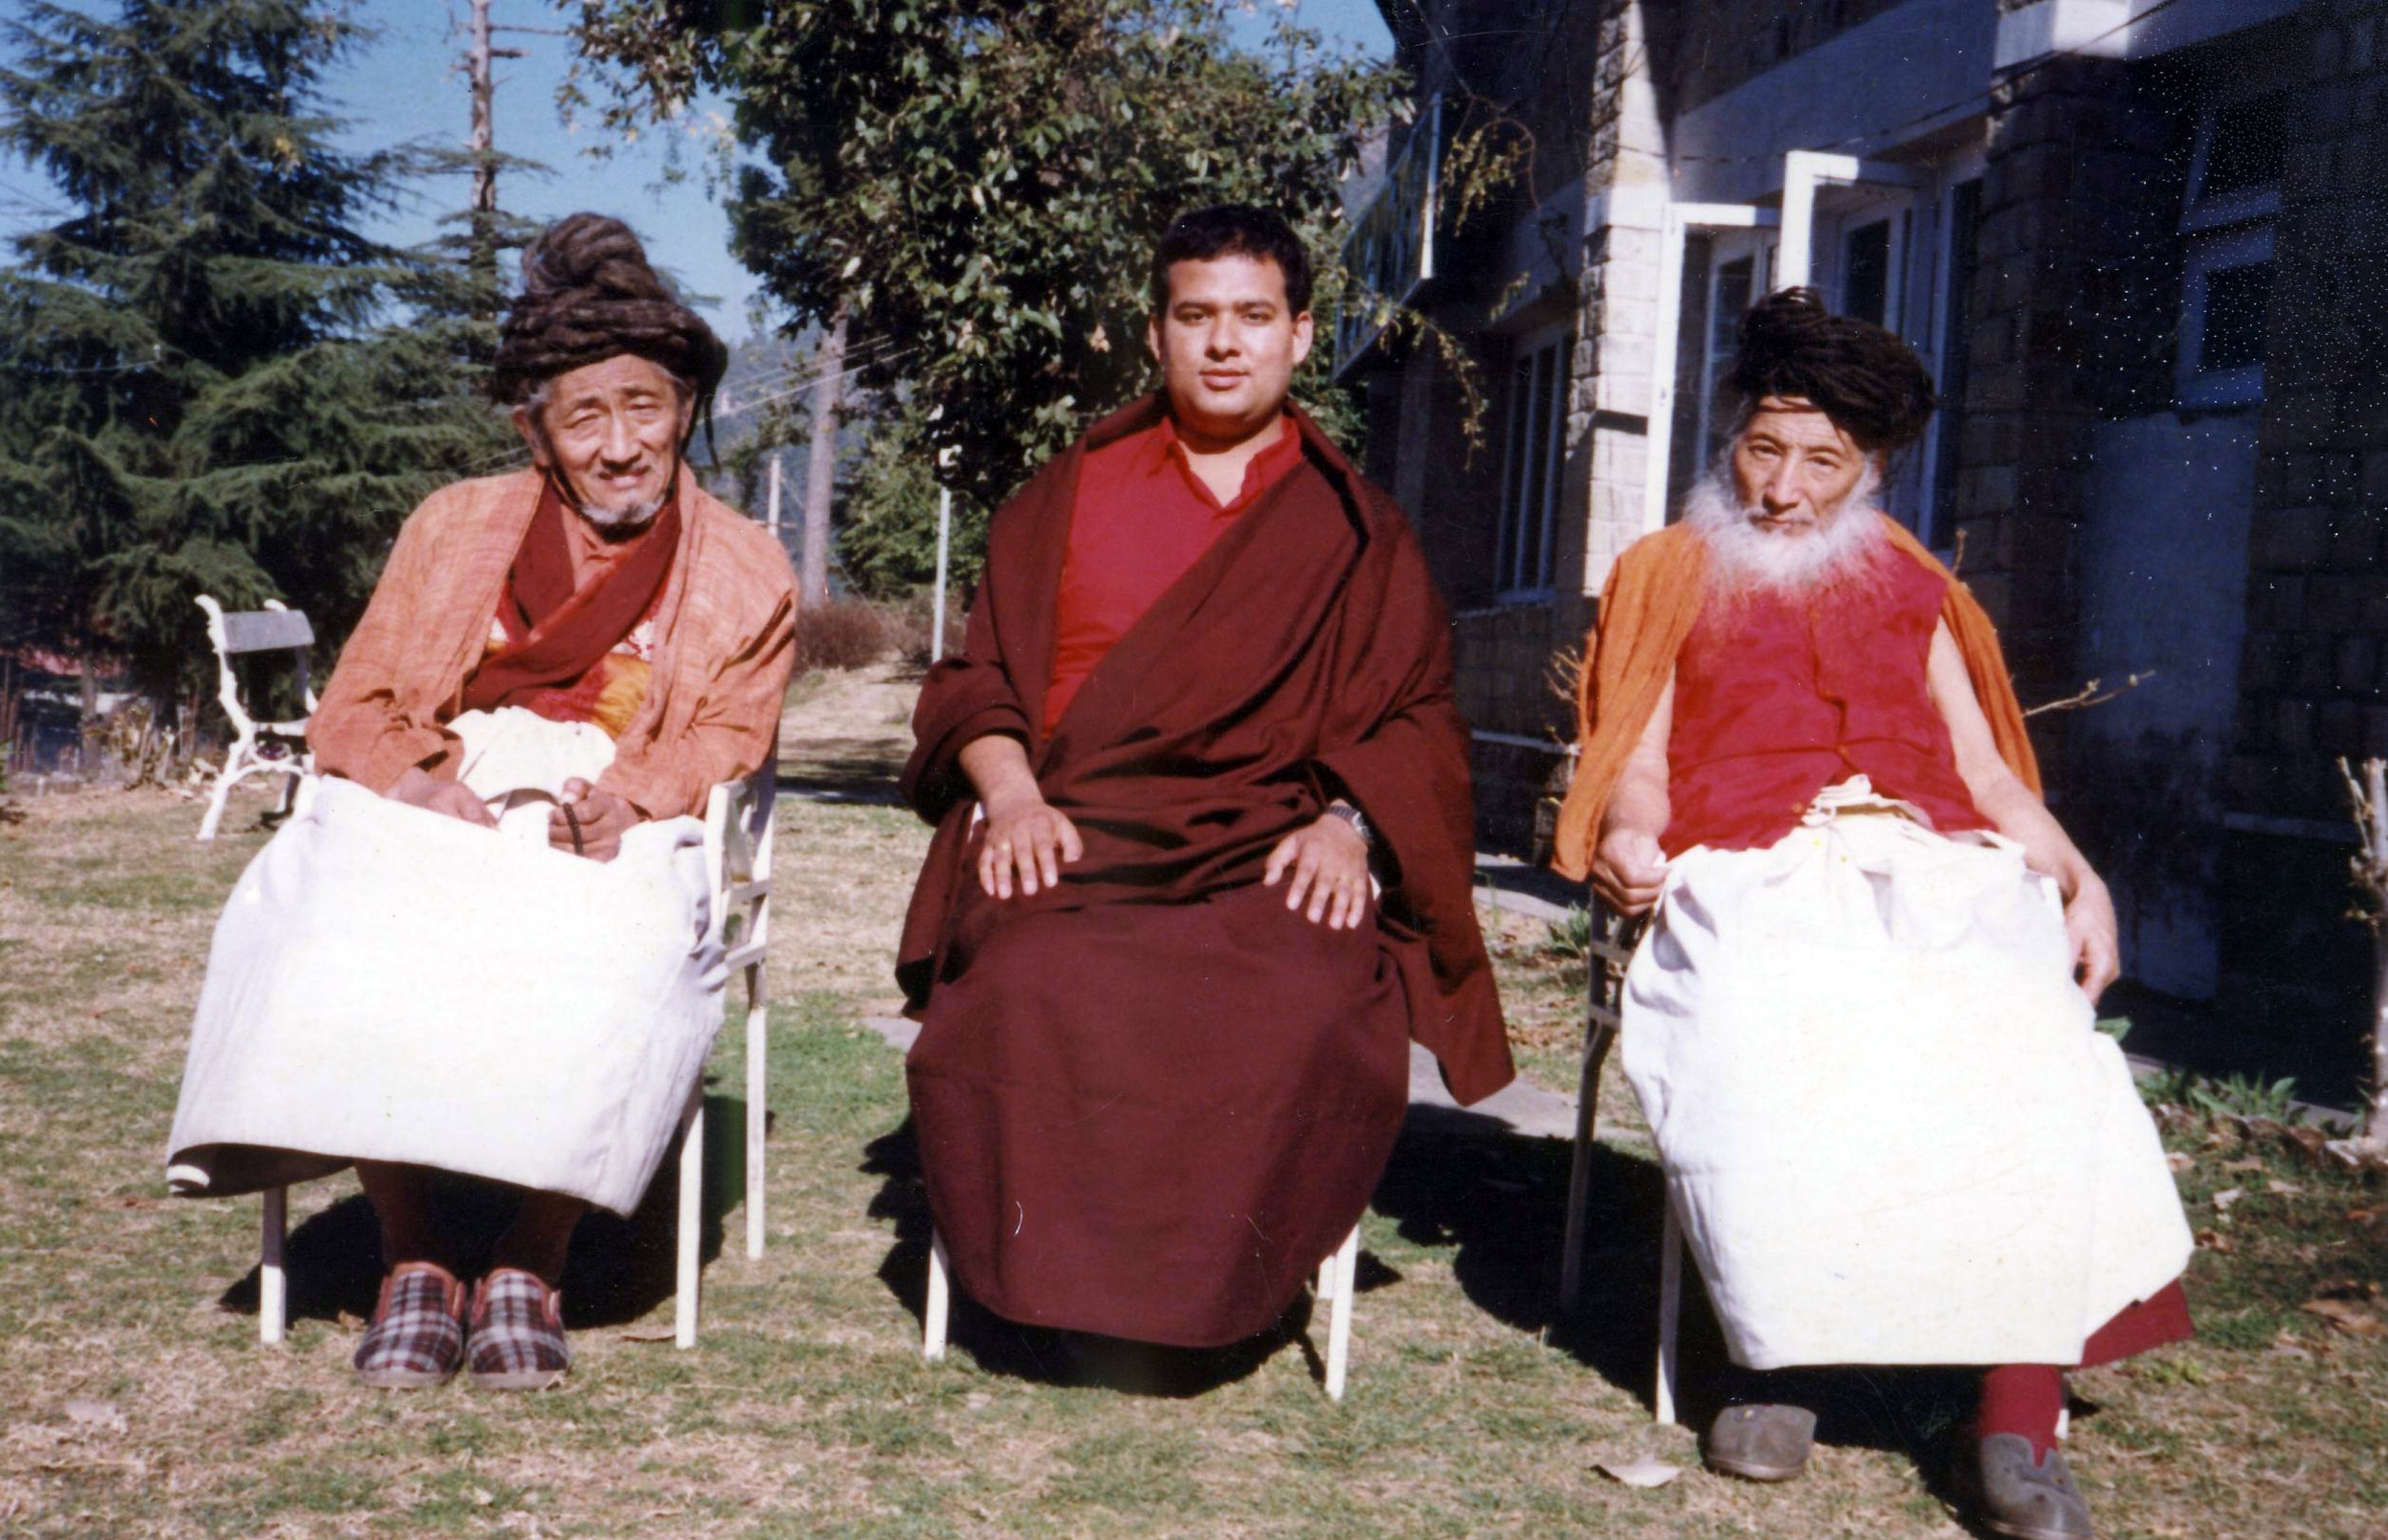 The 9th Drukpa Choegon Rinpoche with Togden Anjam (L) and Togden Amtrin (R) at Khampagar, Tashi Jong.